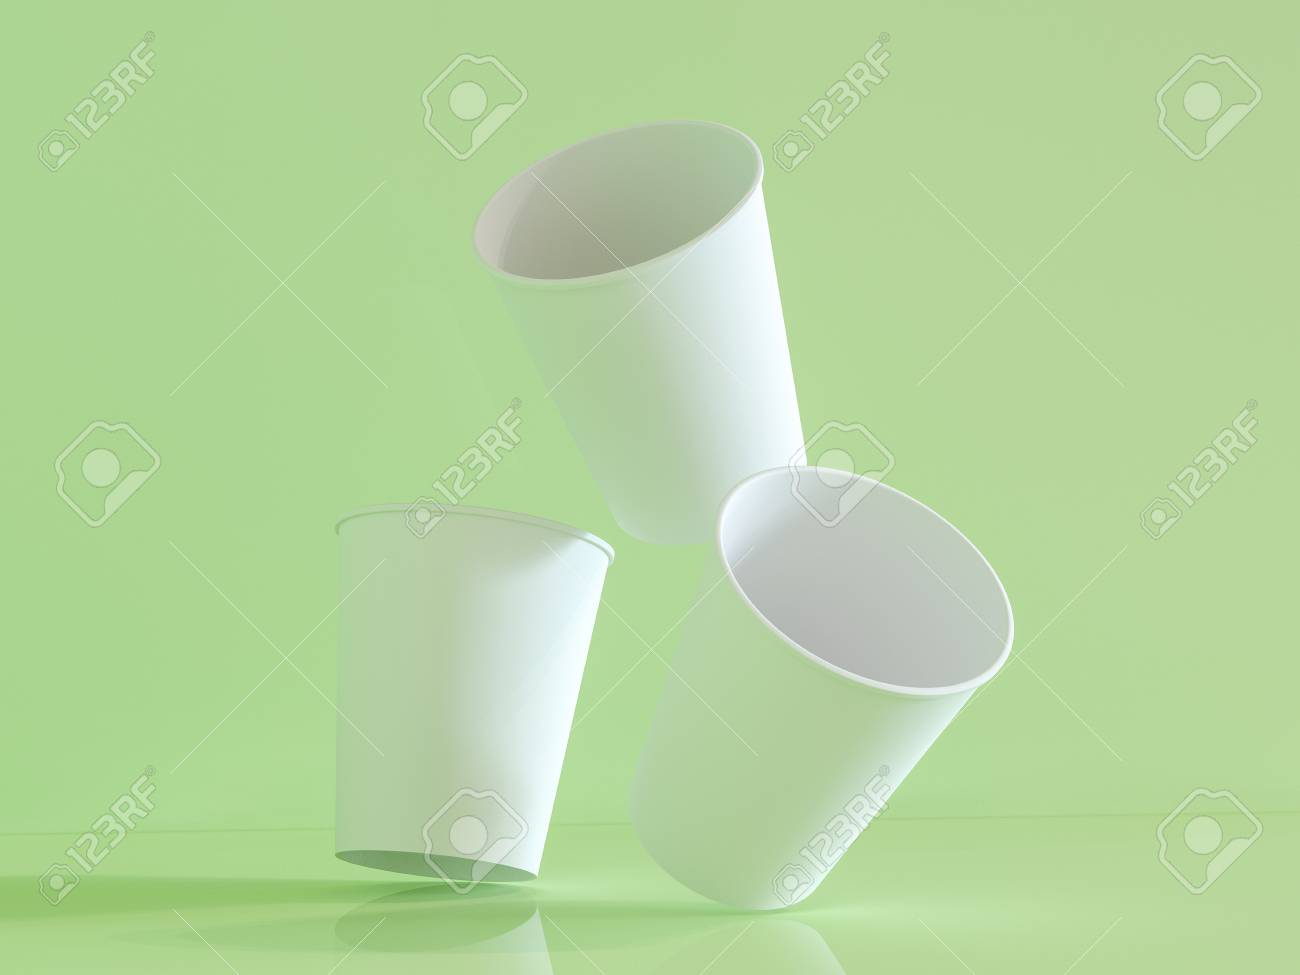 3d Model Of Paper Cups On The Plane Under Natural Light  Green